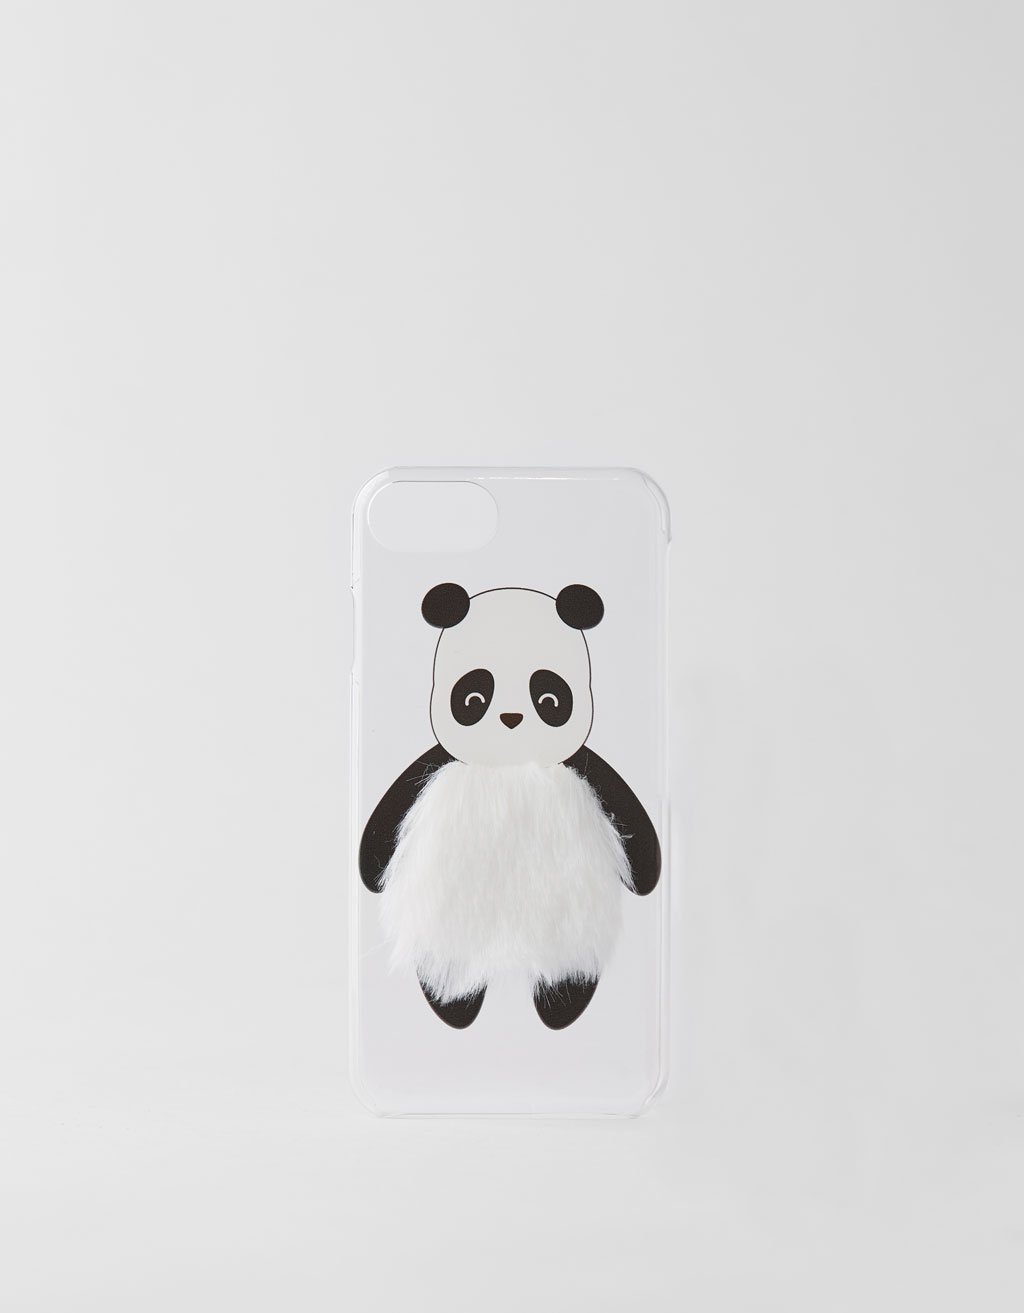 Carcassa panda iPhone 6 / 6S / 7 / 8